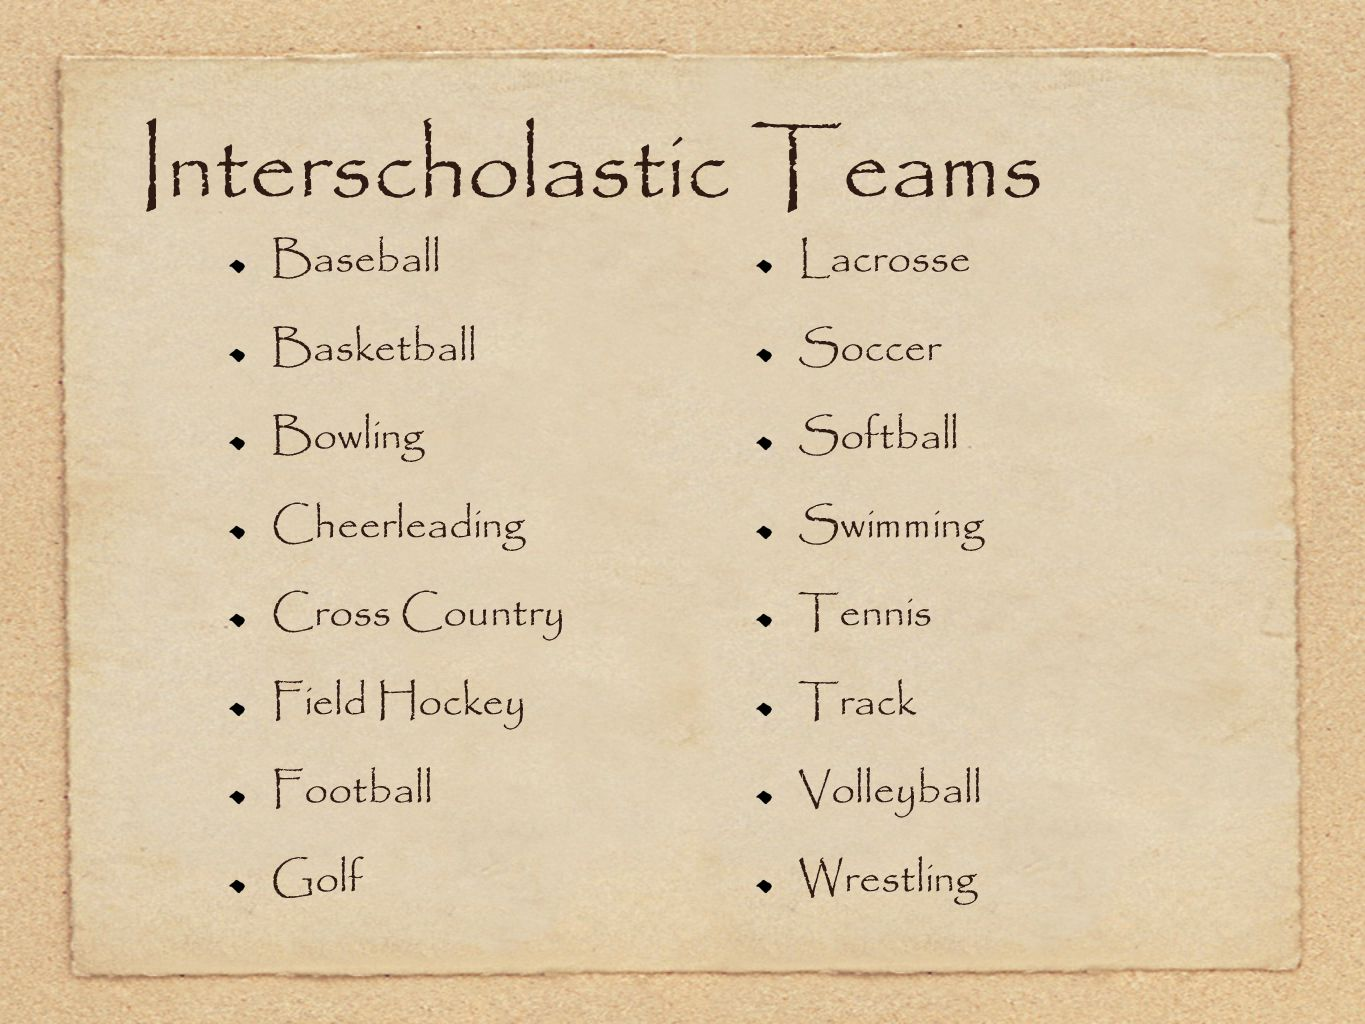 Interscholastic Teams Baseball Basketball Bowling Cheerleading Cross Country Field Hockey Football Golf Lacrosse Soccer Softball Swimming Tennis Track